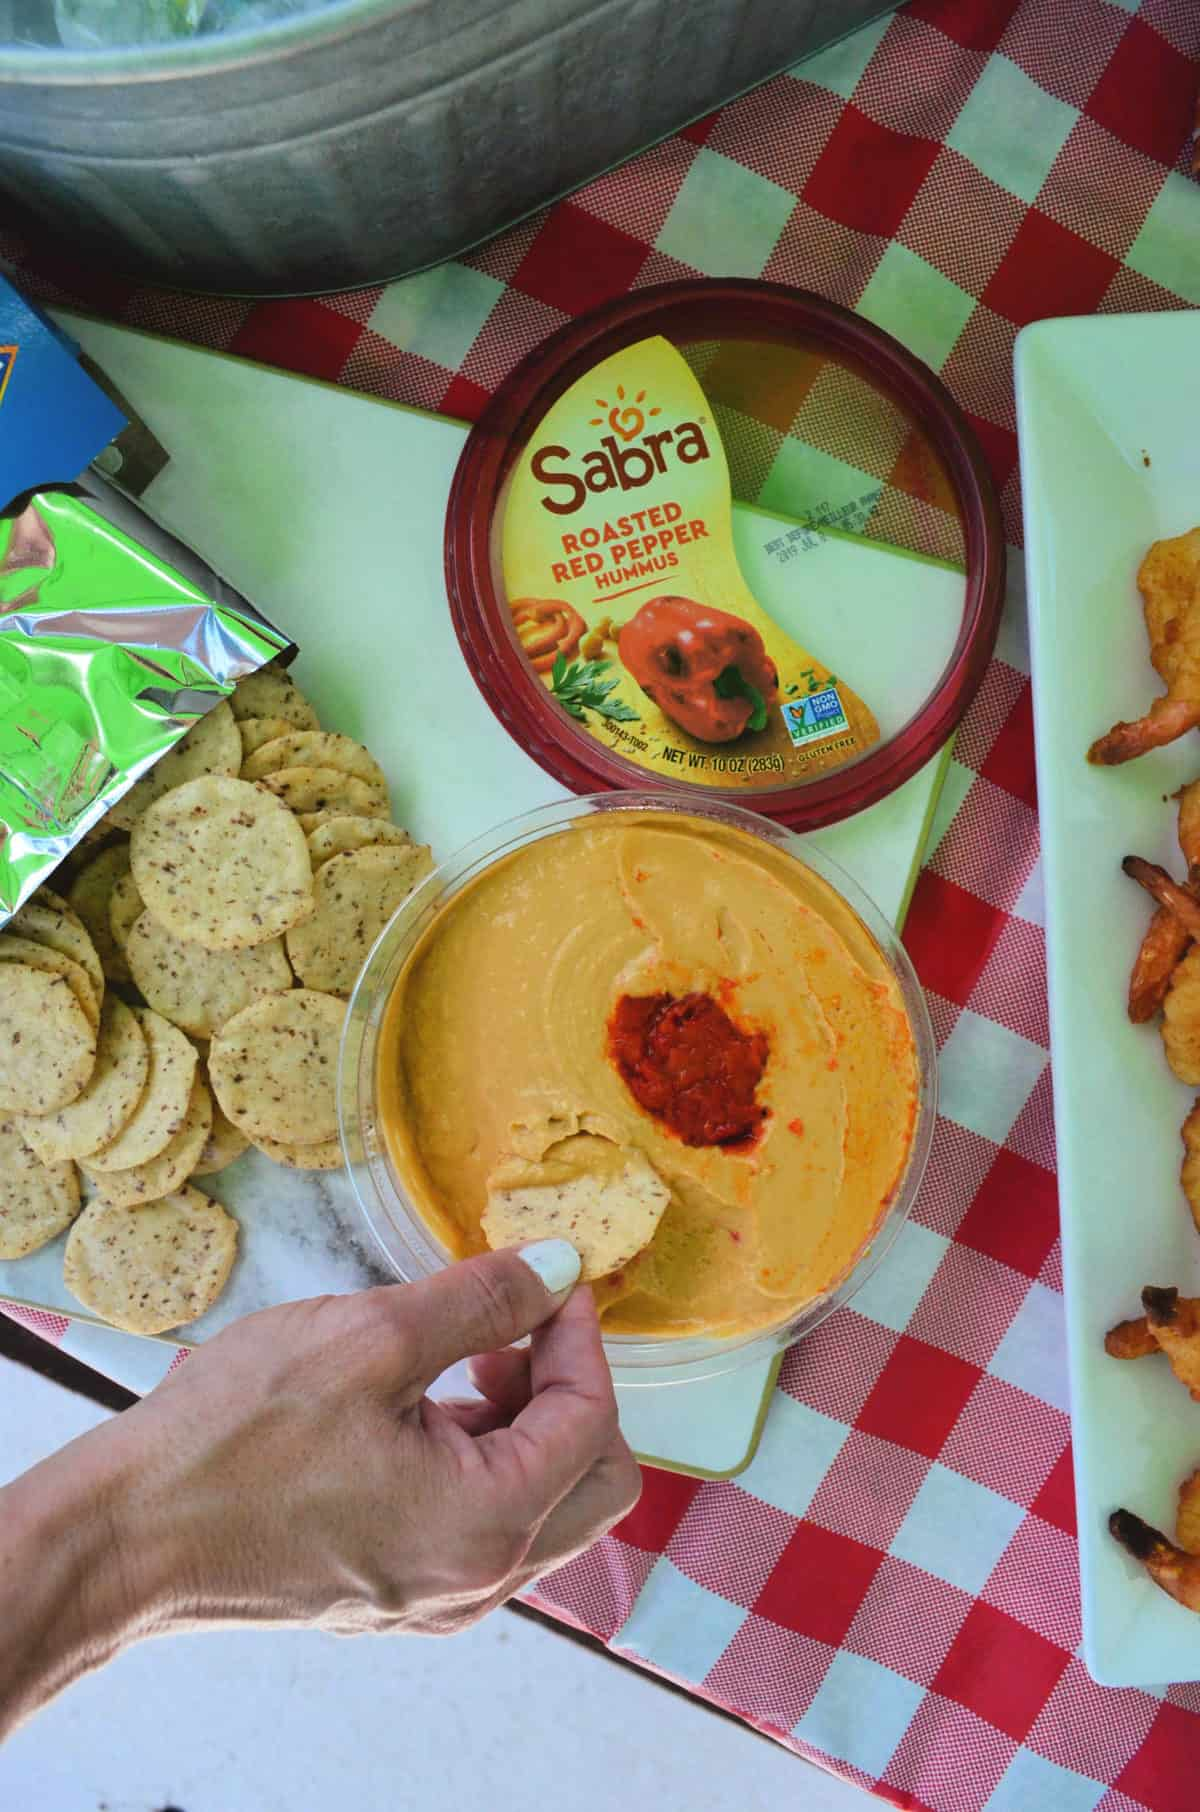 top view of hand dipping nut-thin into Sabra Roasted Red Pepper Hummus on red tablecloth.